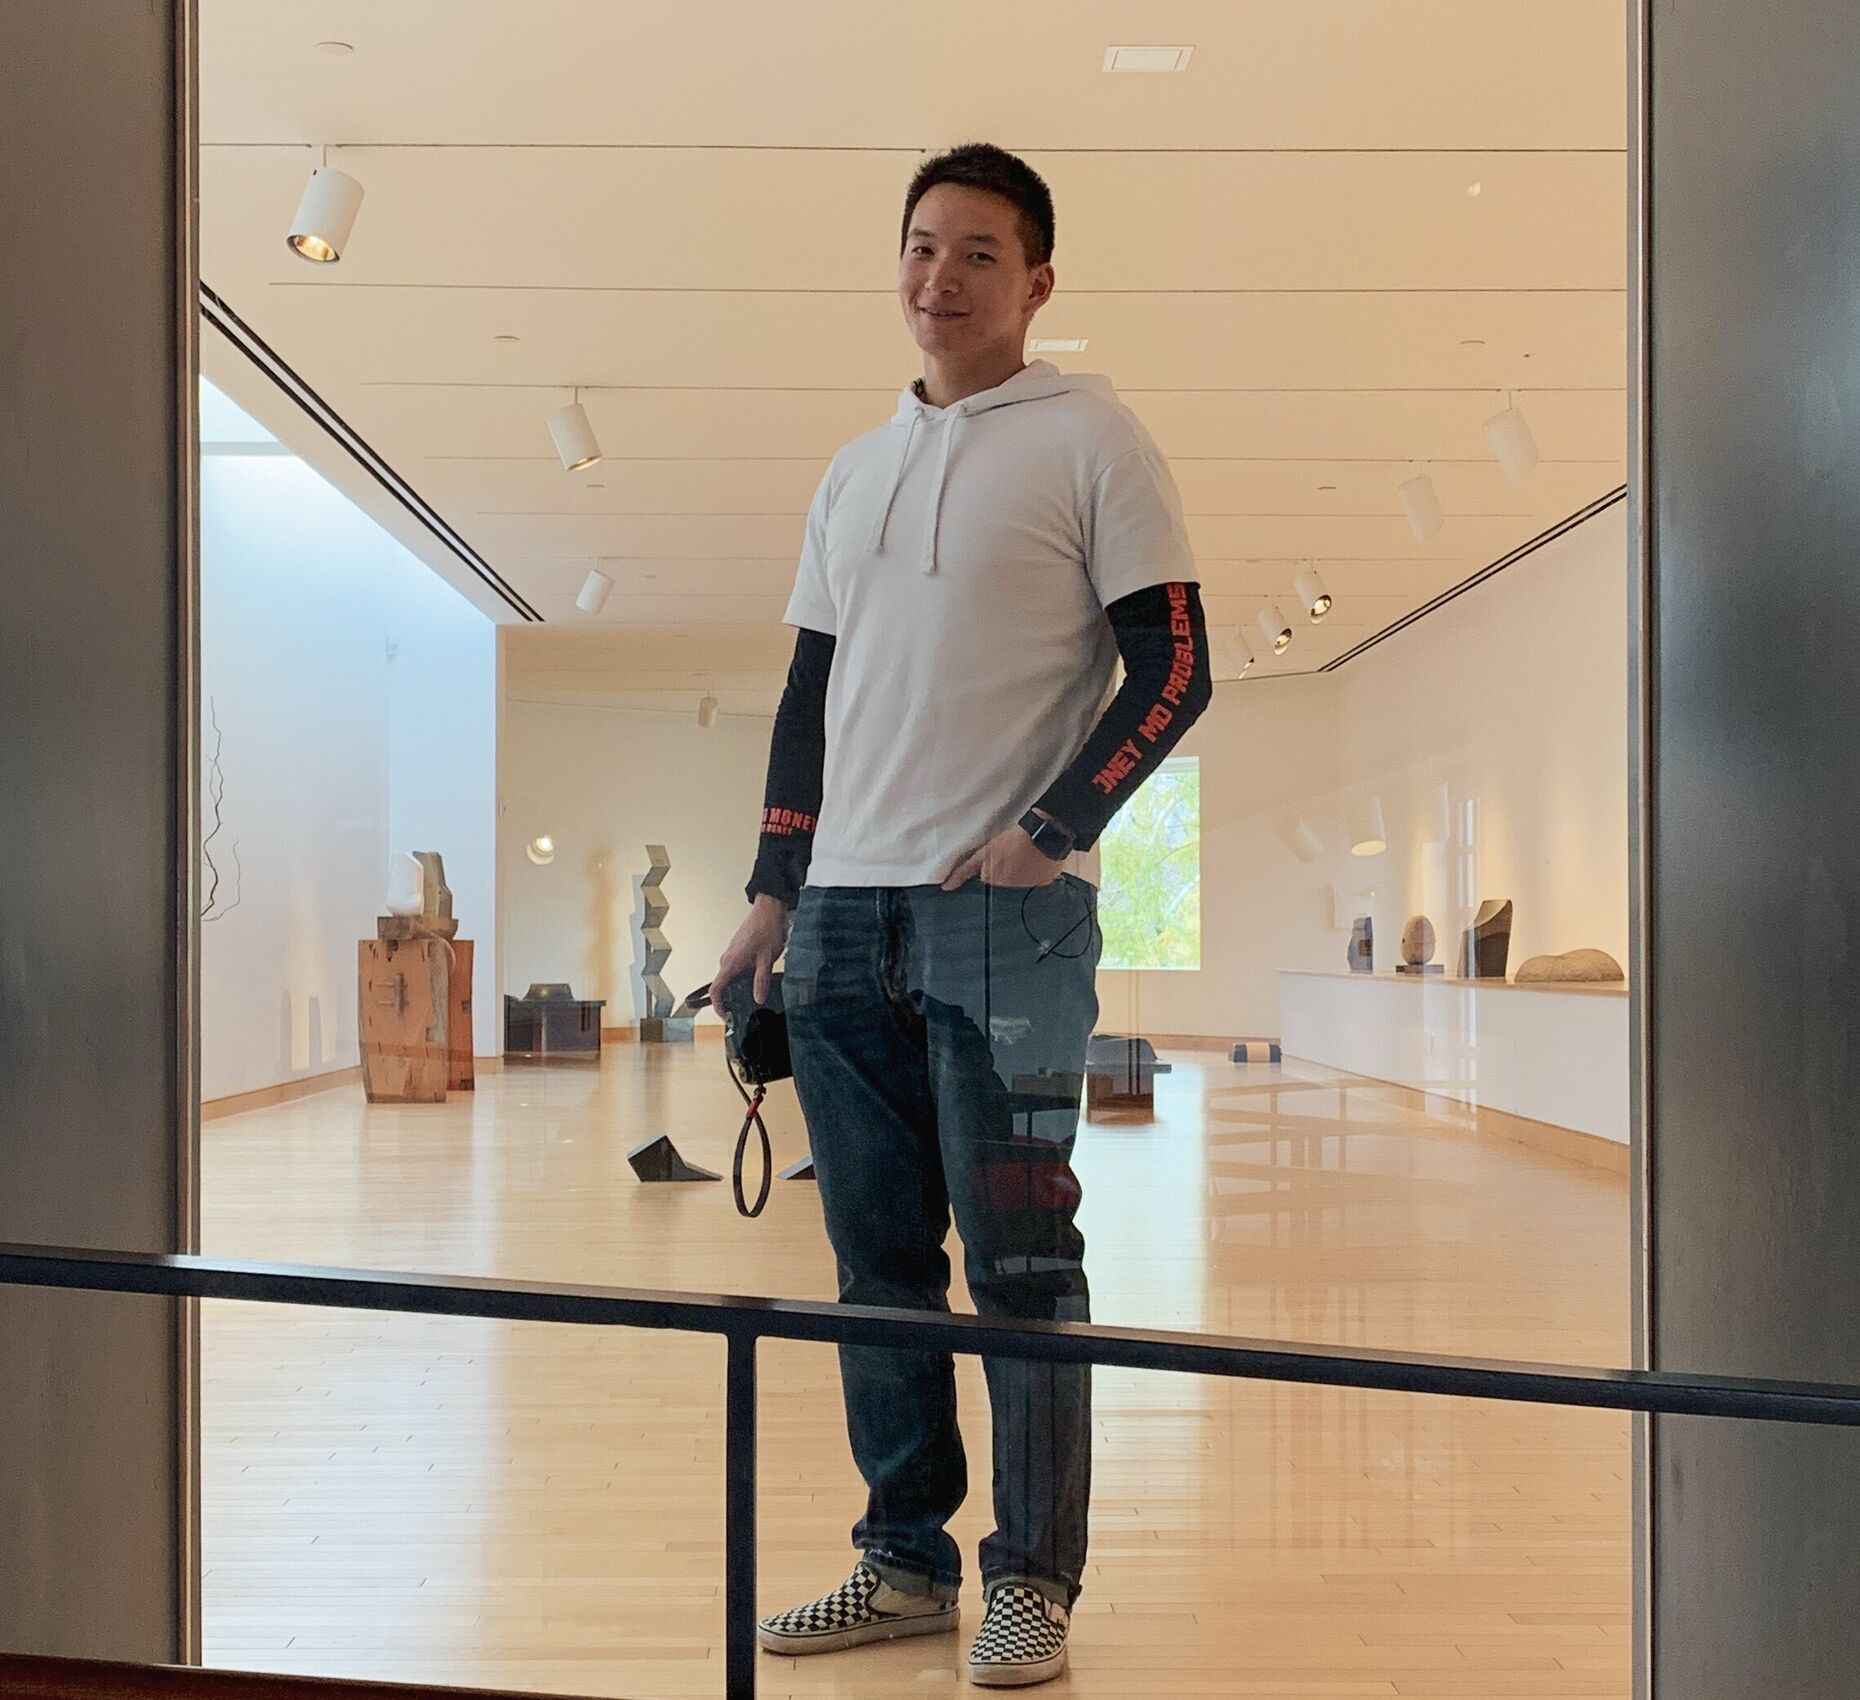 Sociology major David Yang, an economics minor who is also president of F&M photography club, has spent much of his senior year developing a new approach to policy making called dynamic institutionalism.